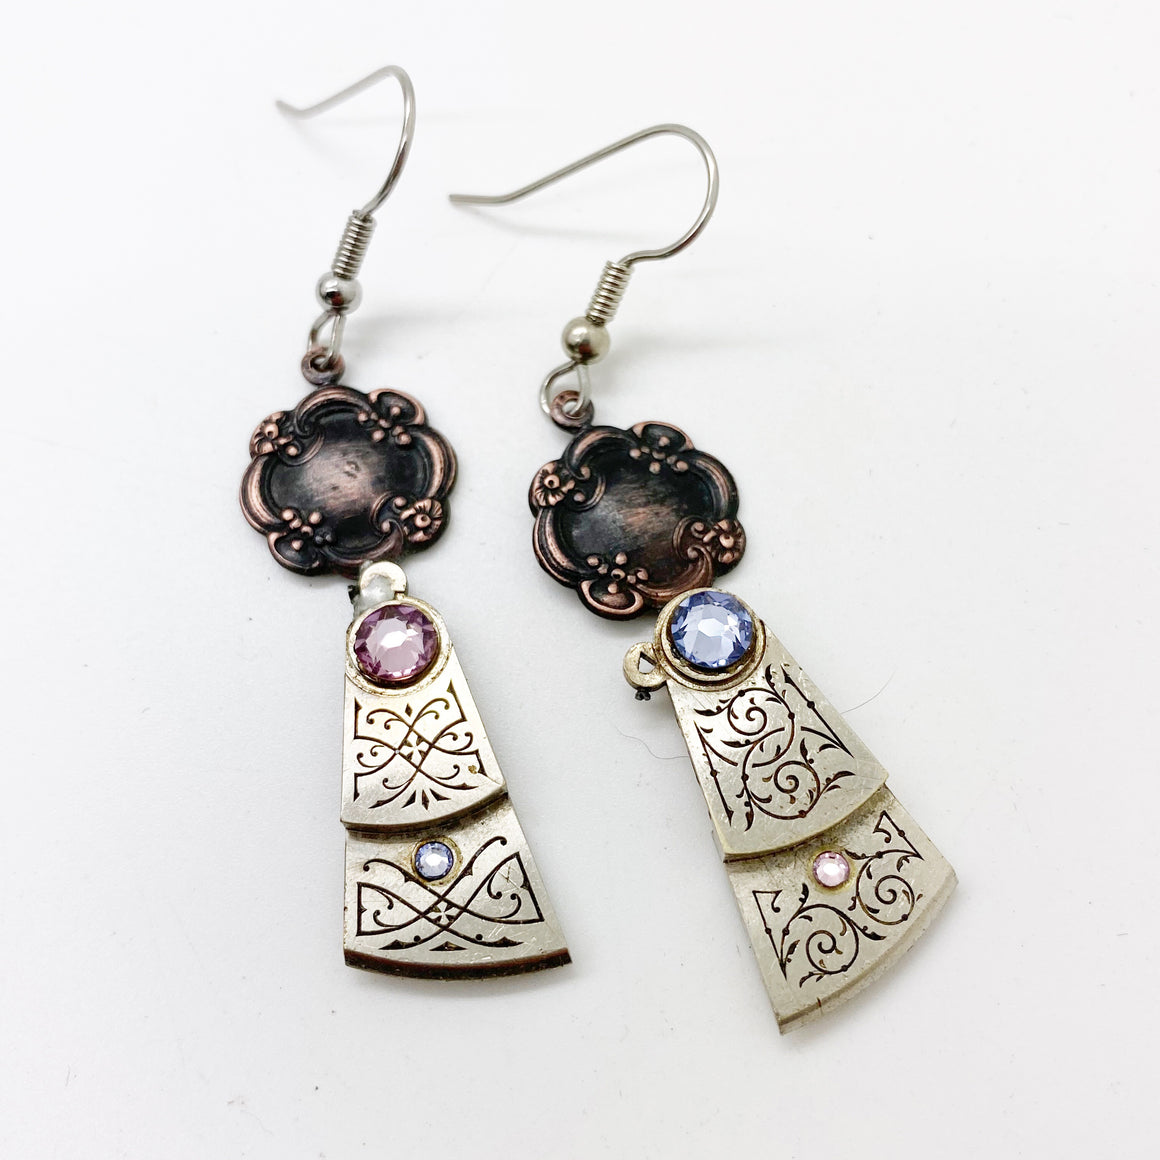 Charity, Engraved Antique Drop Earrings - The Victorian Magpie